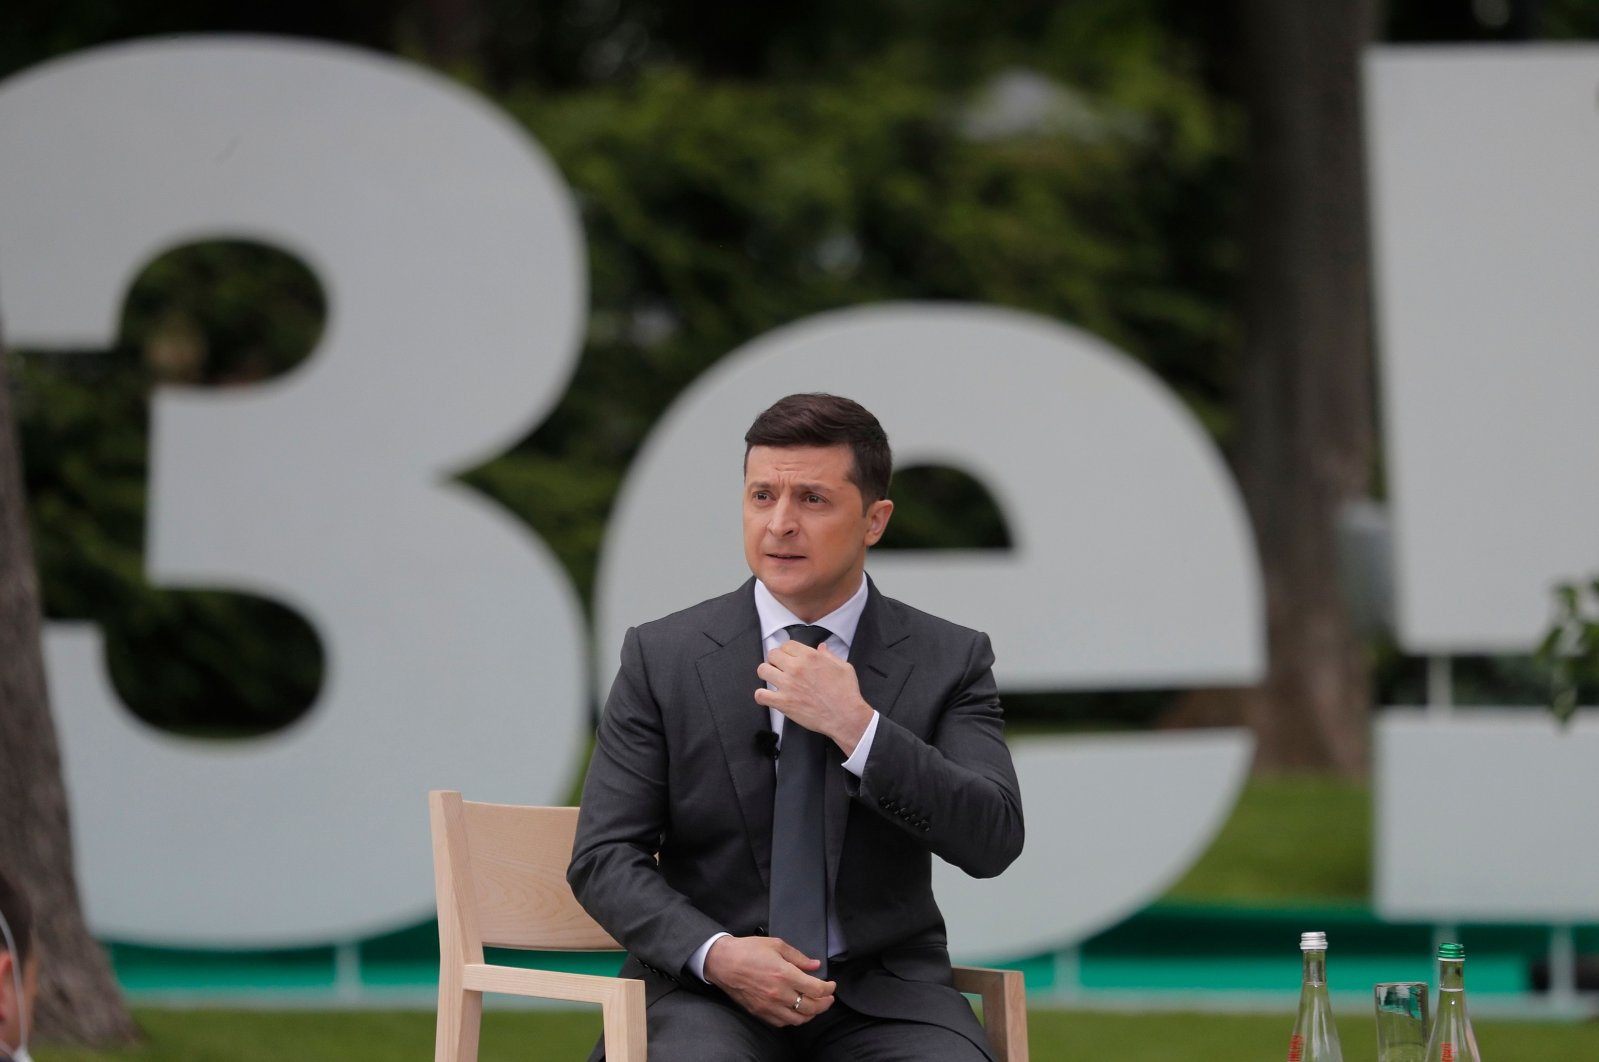 Ukrainian President Volodymyr Zelensky holds a press conference marking his first year in office at Kyiv's Mariinsky Palace on May 20, 2020. (AFP Photo)